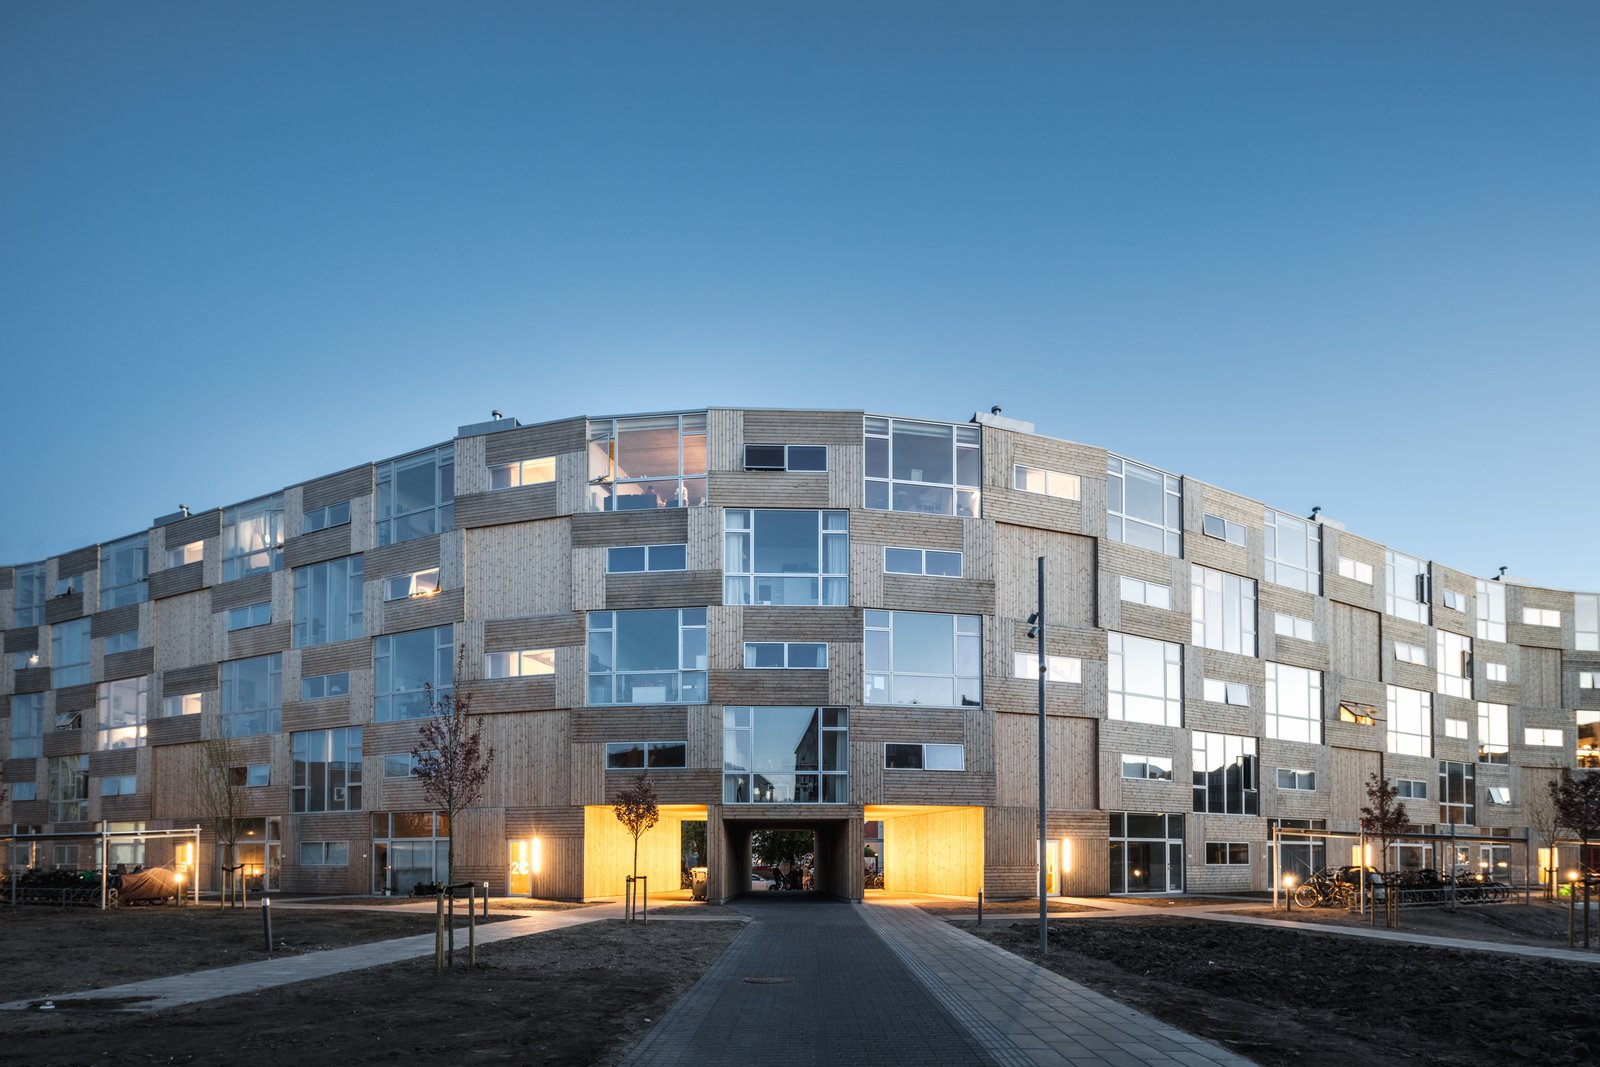 This Curving Prefab Building in Copenhagen Contains 66 Affordable Apartments